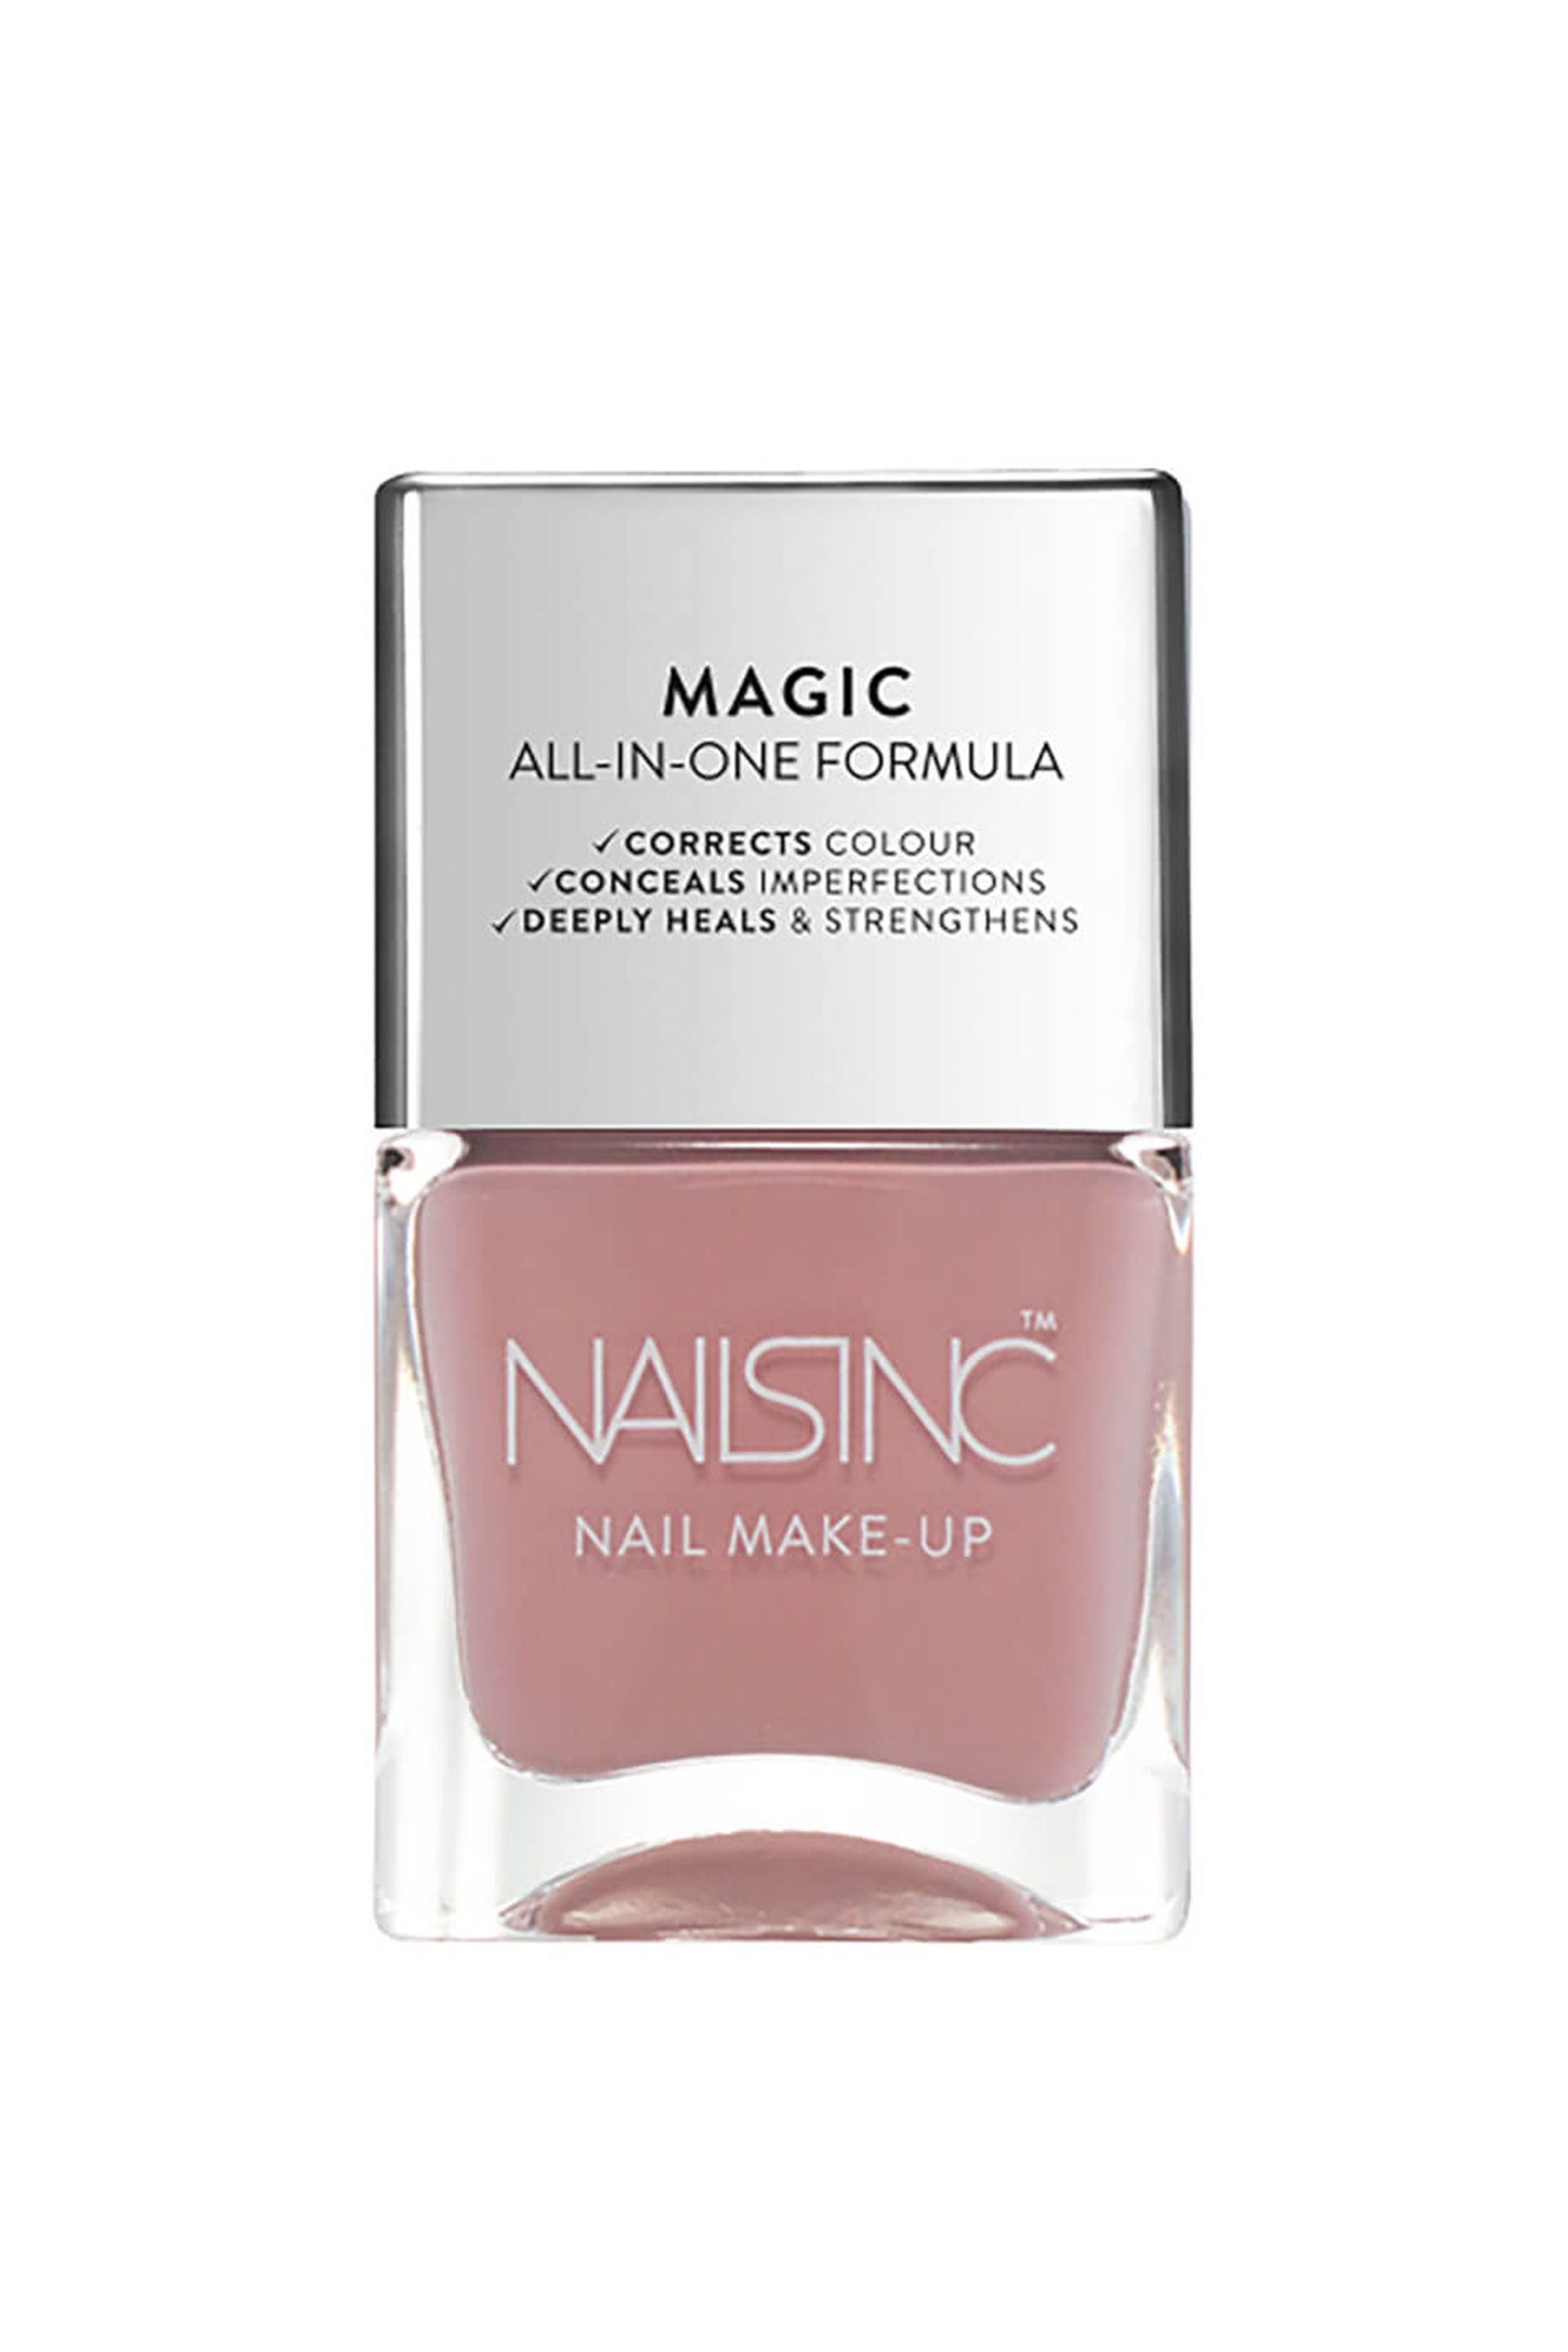 15 New Nail Polishes to Try for Spring   Nail polish colors, Spring ...